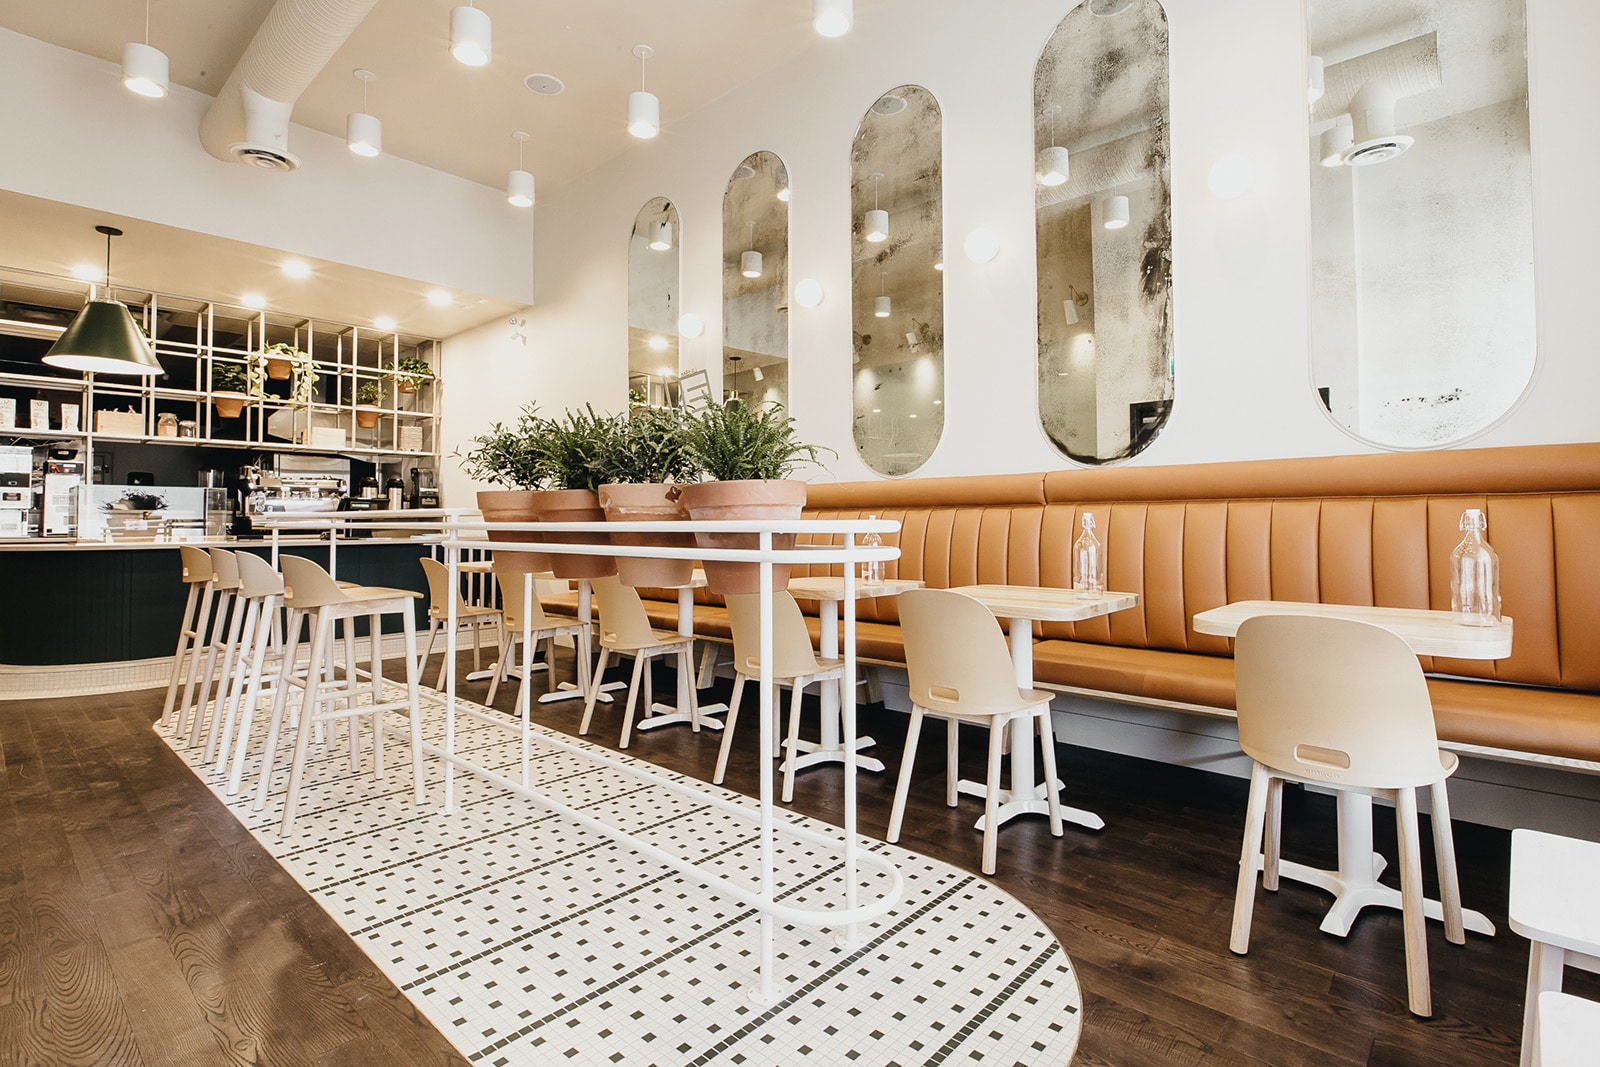 Top tips to revamp your restaurant's interior design